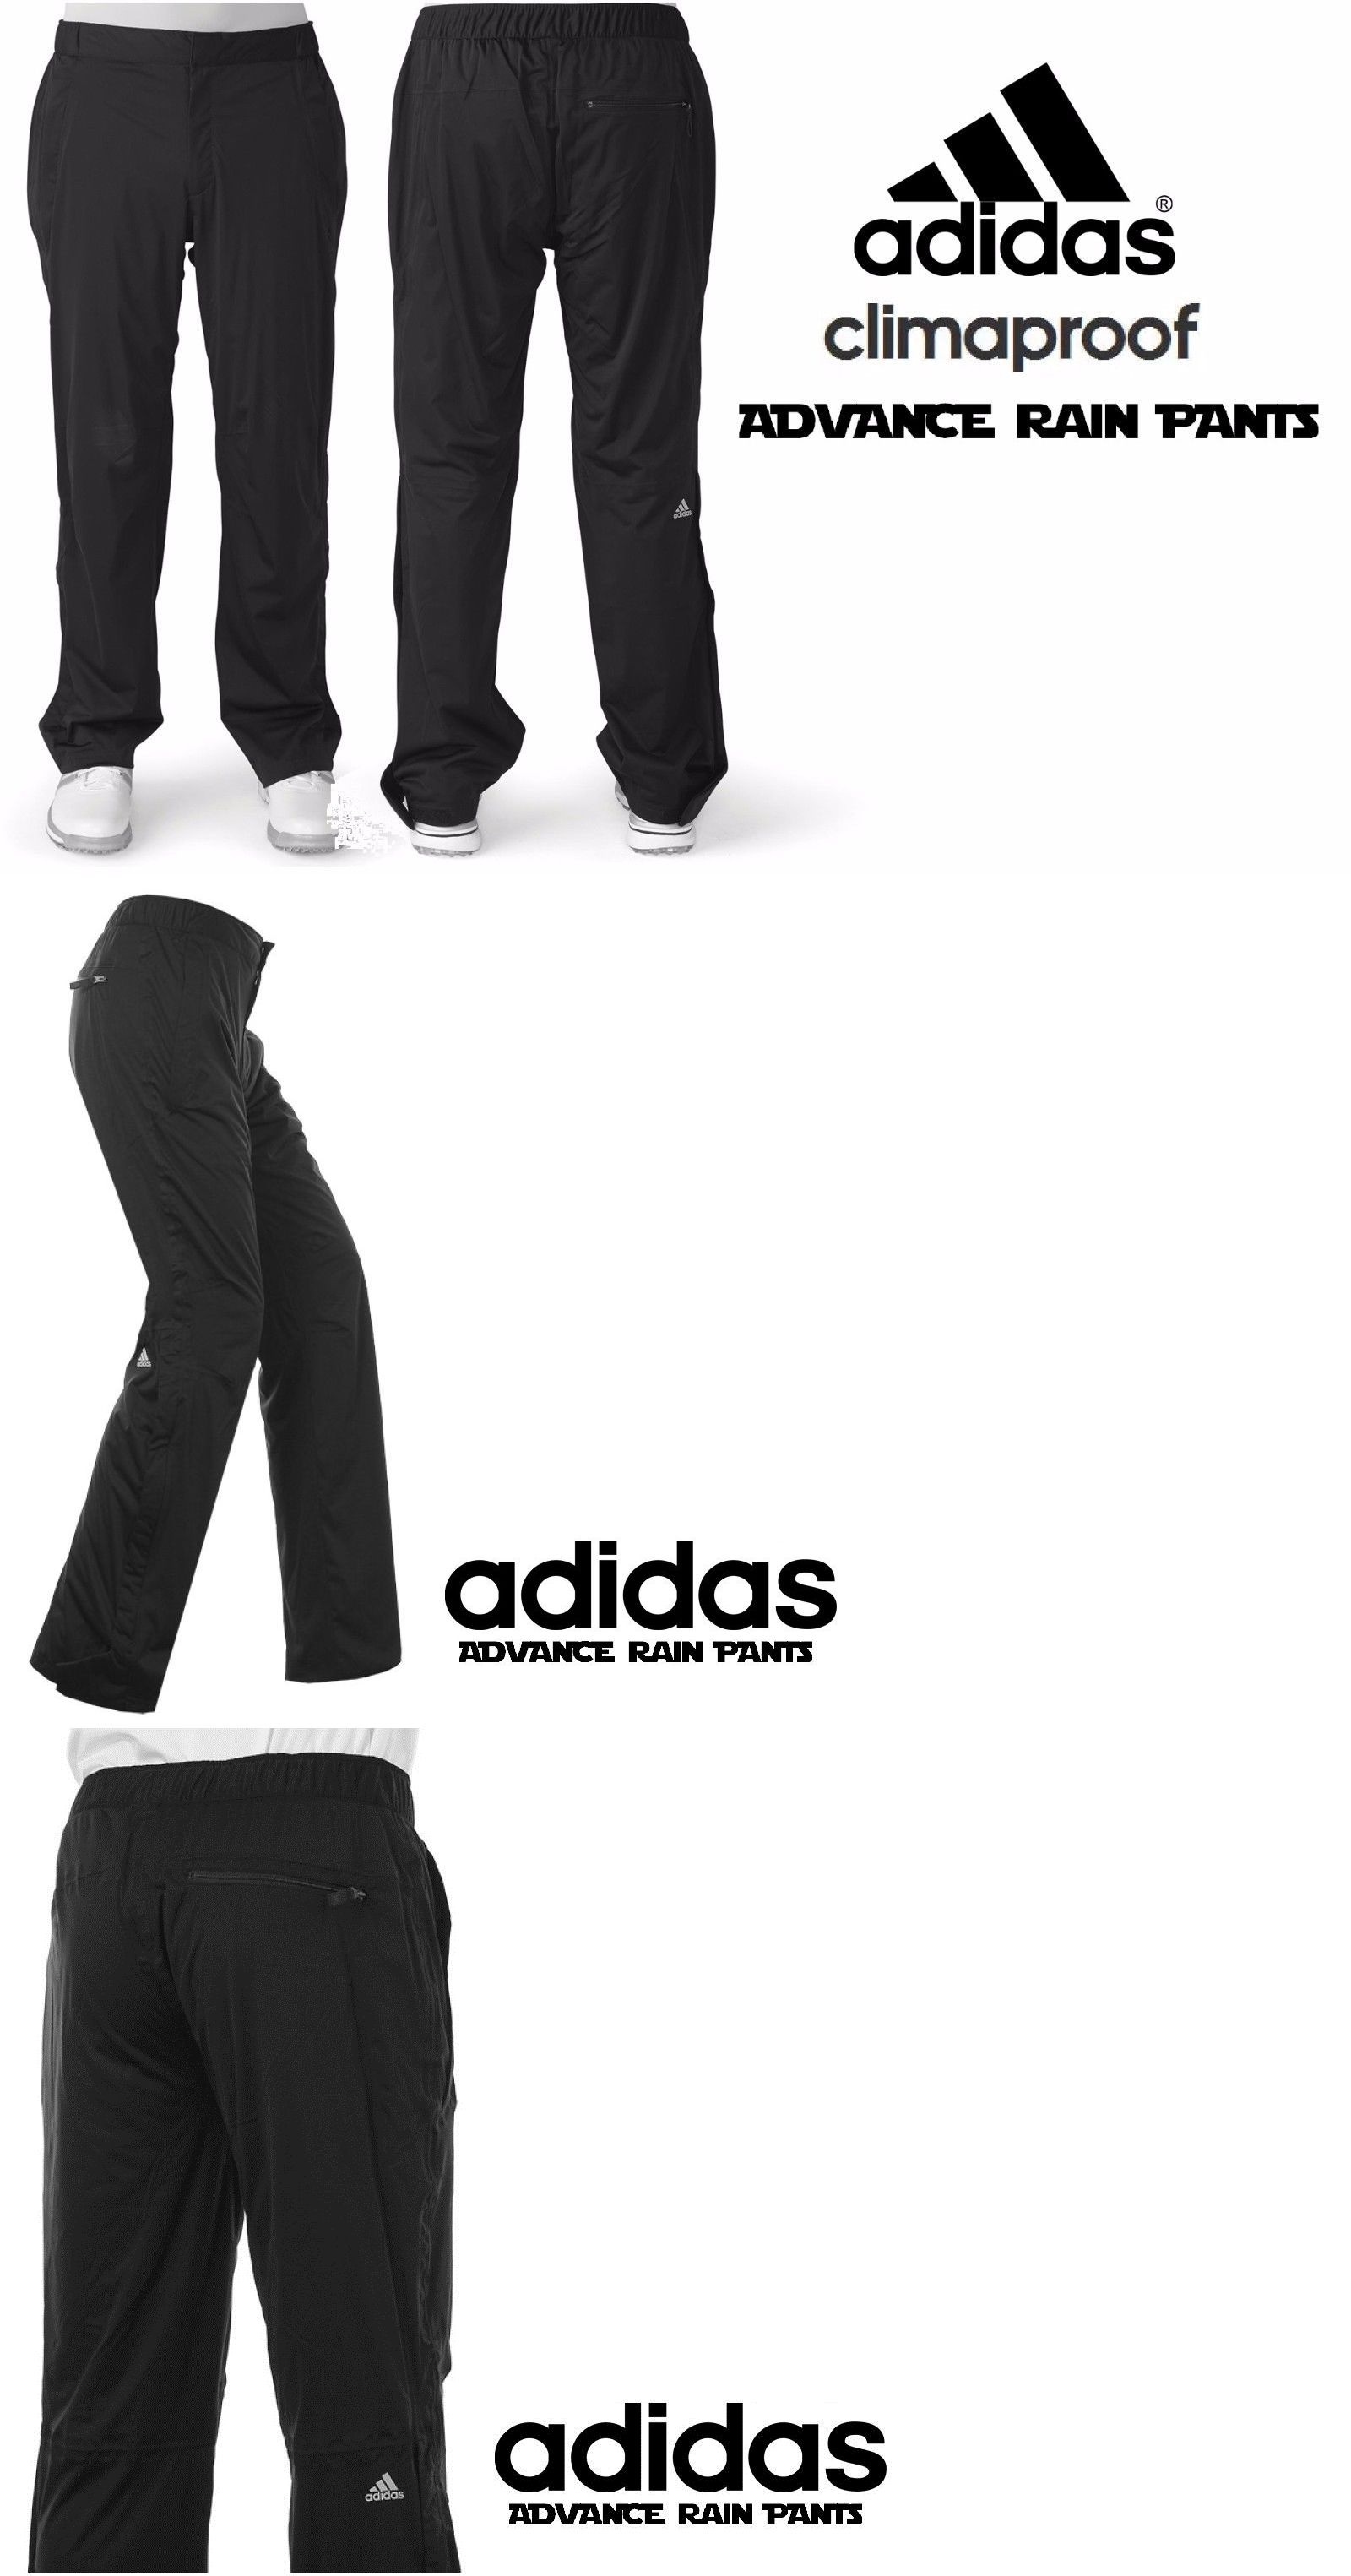 Other Mens Golf Clothing 181141: Adidas Climaproof Advance ...